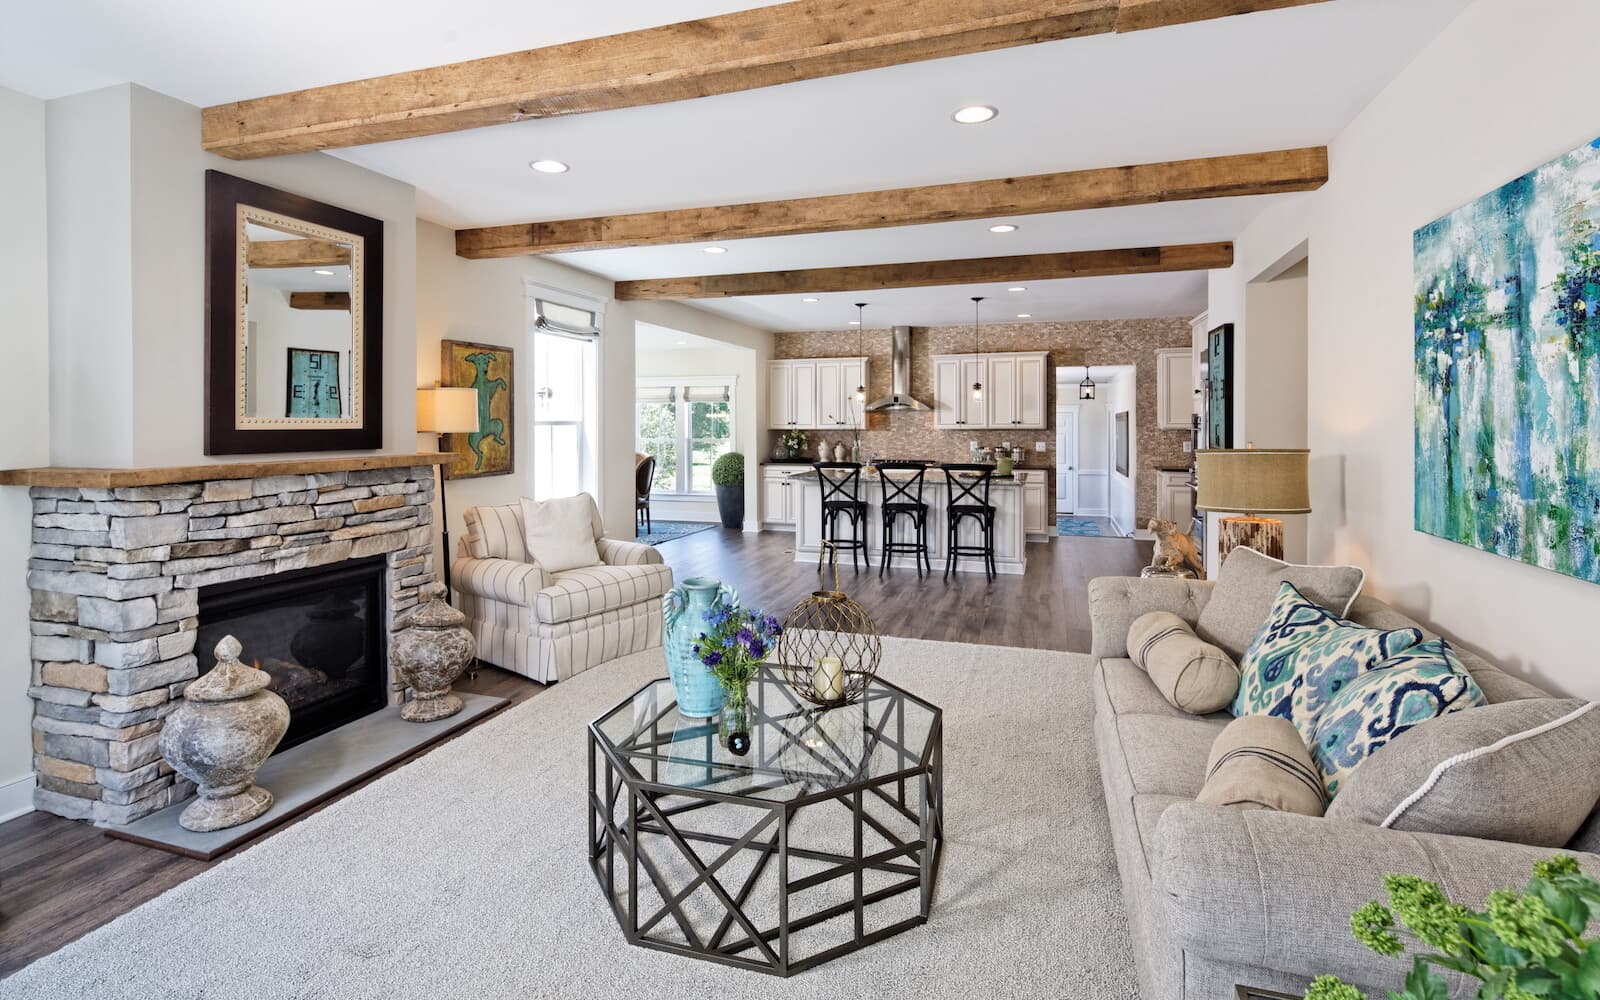 FillmoreII-living-room-single-family-home-leesburg-va-waterford-manor-brookfield-residential